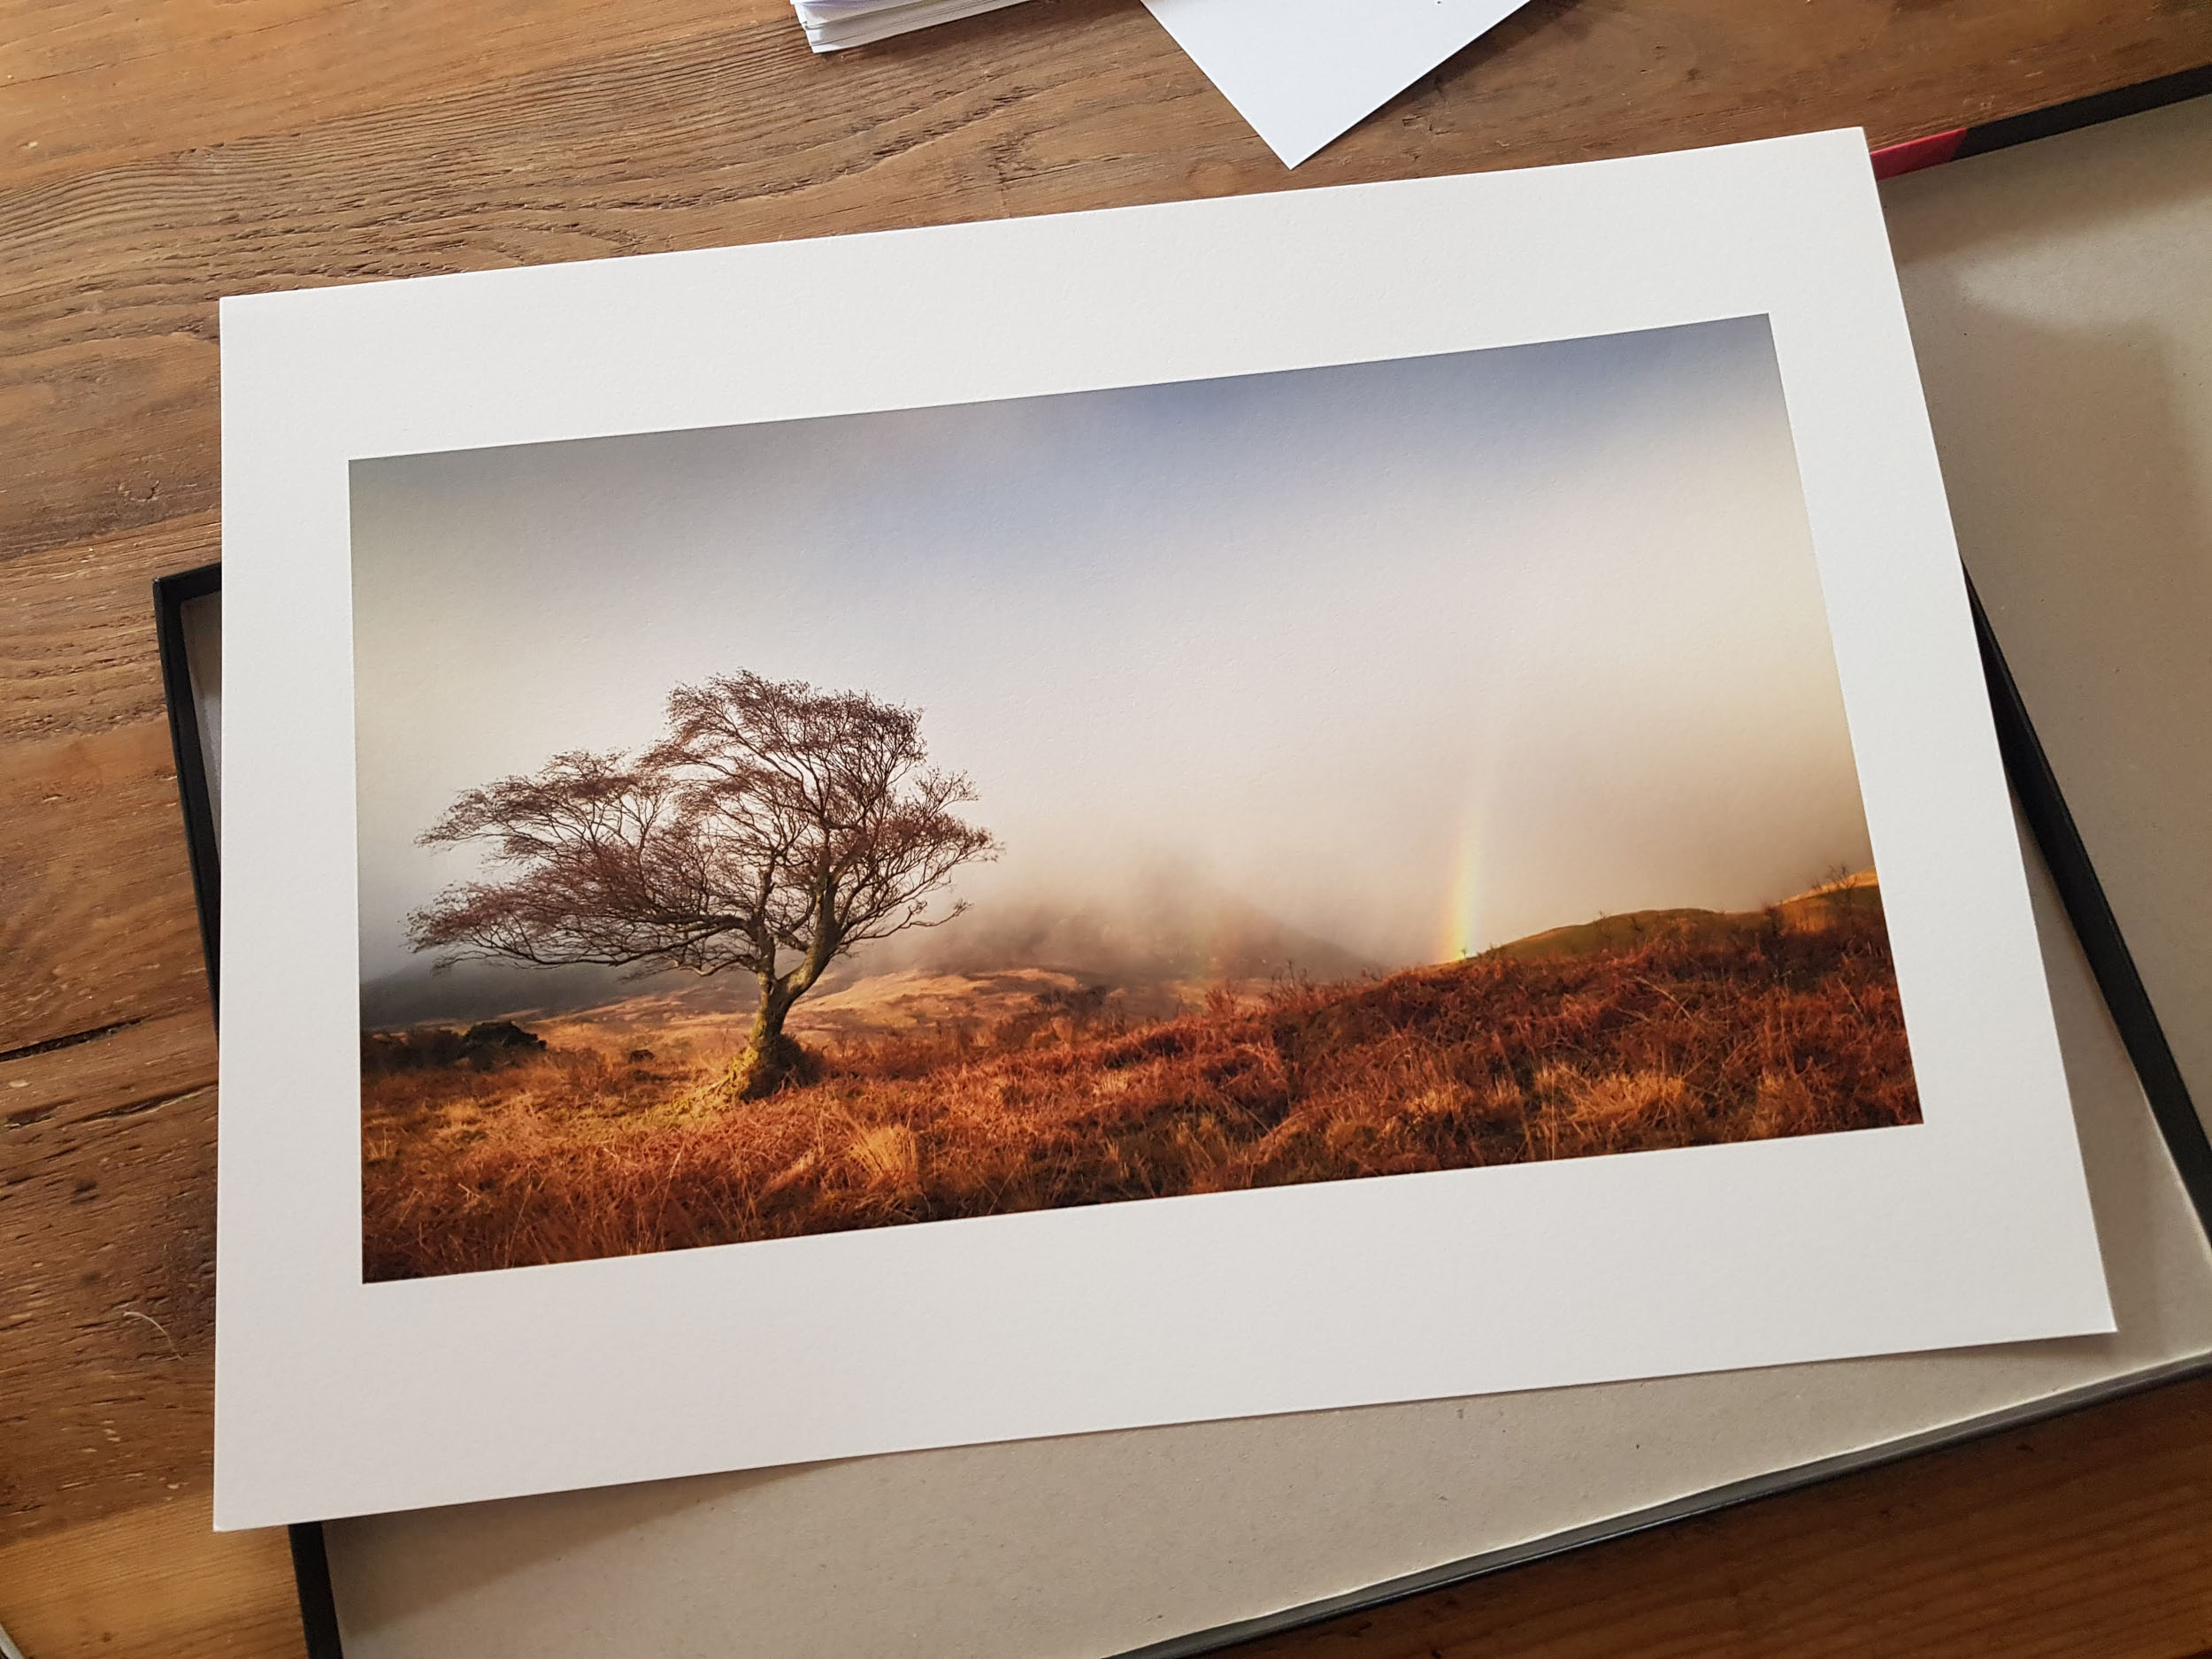 - Arran Light printed by Fotospeed on their A3 NST Bright White paper